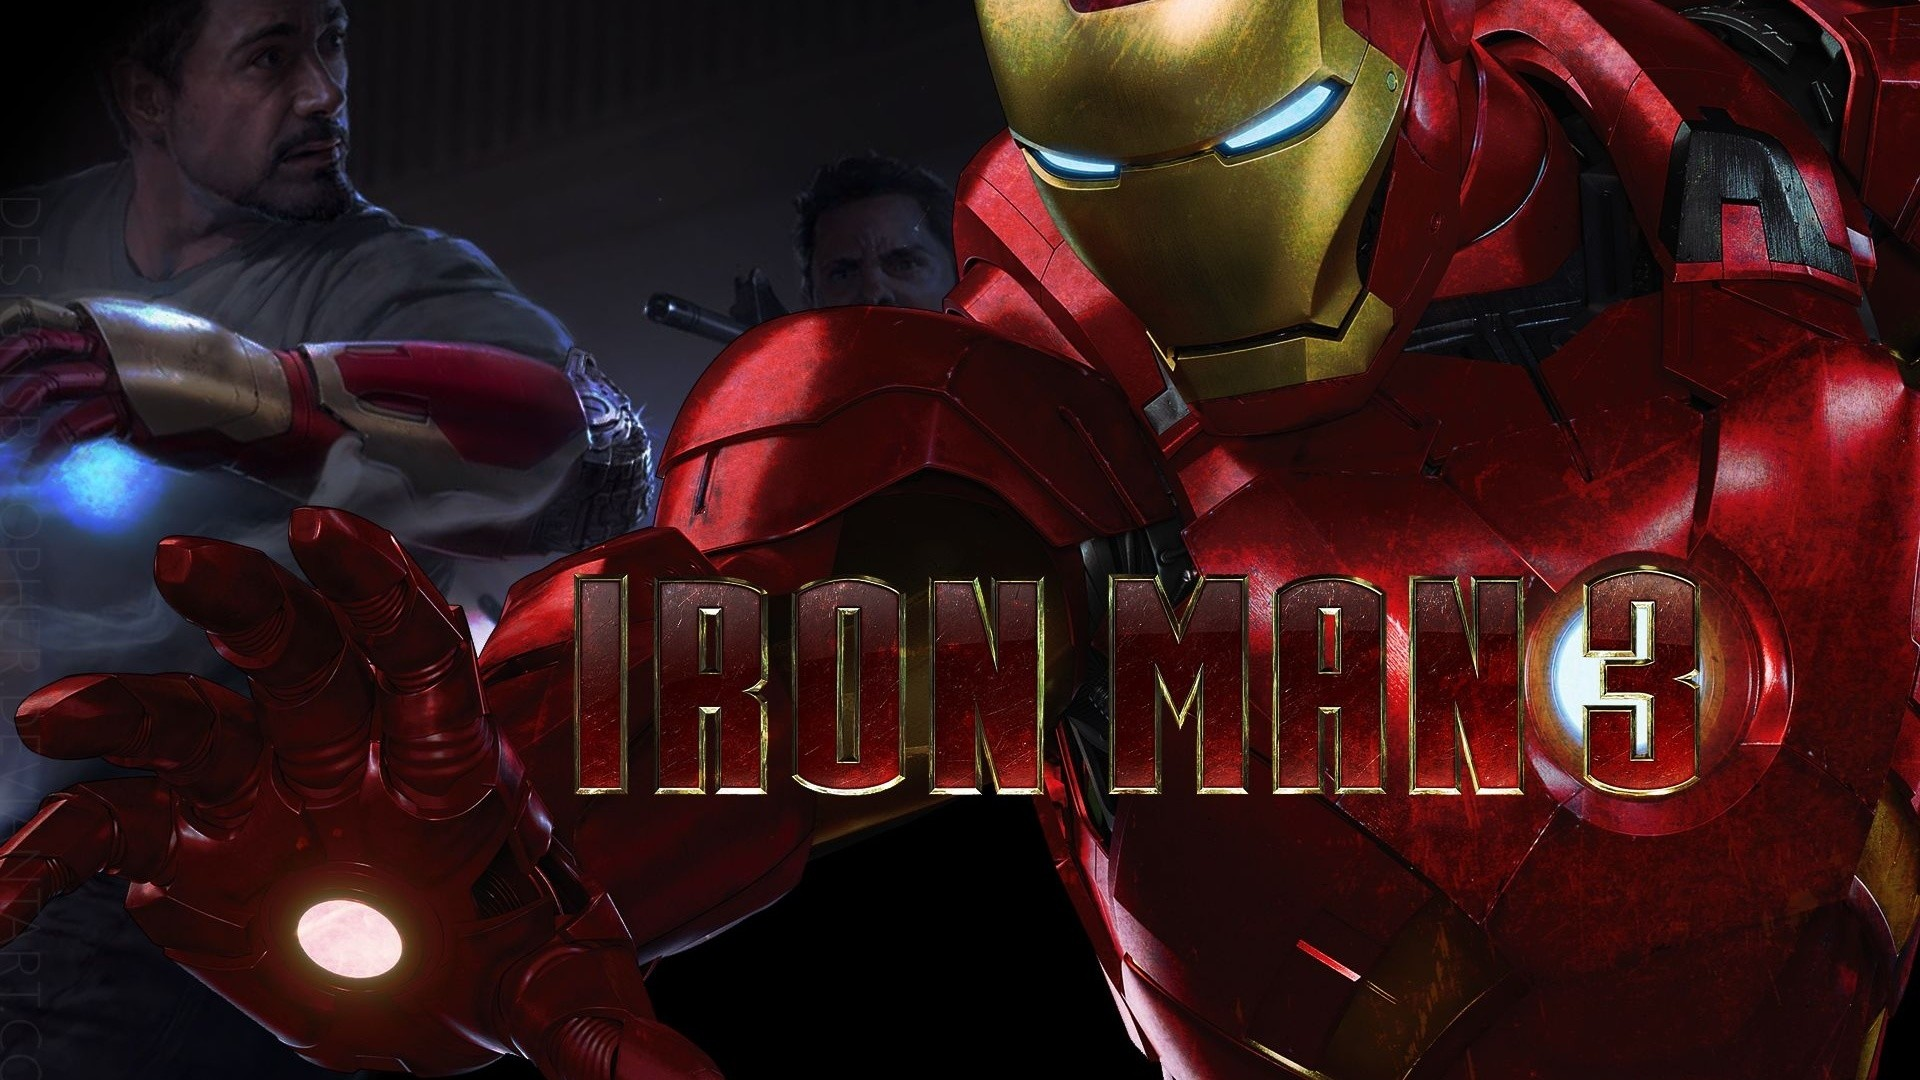 1920x1080 Iron Man Wallpapers Free Download